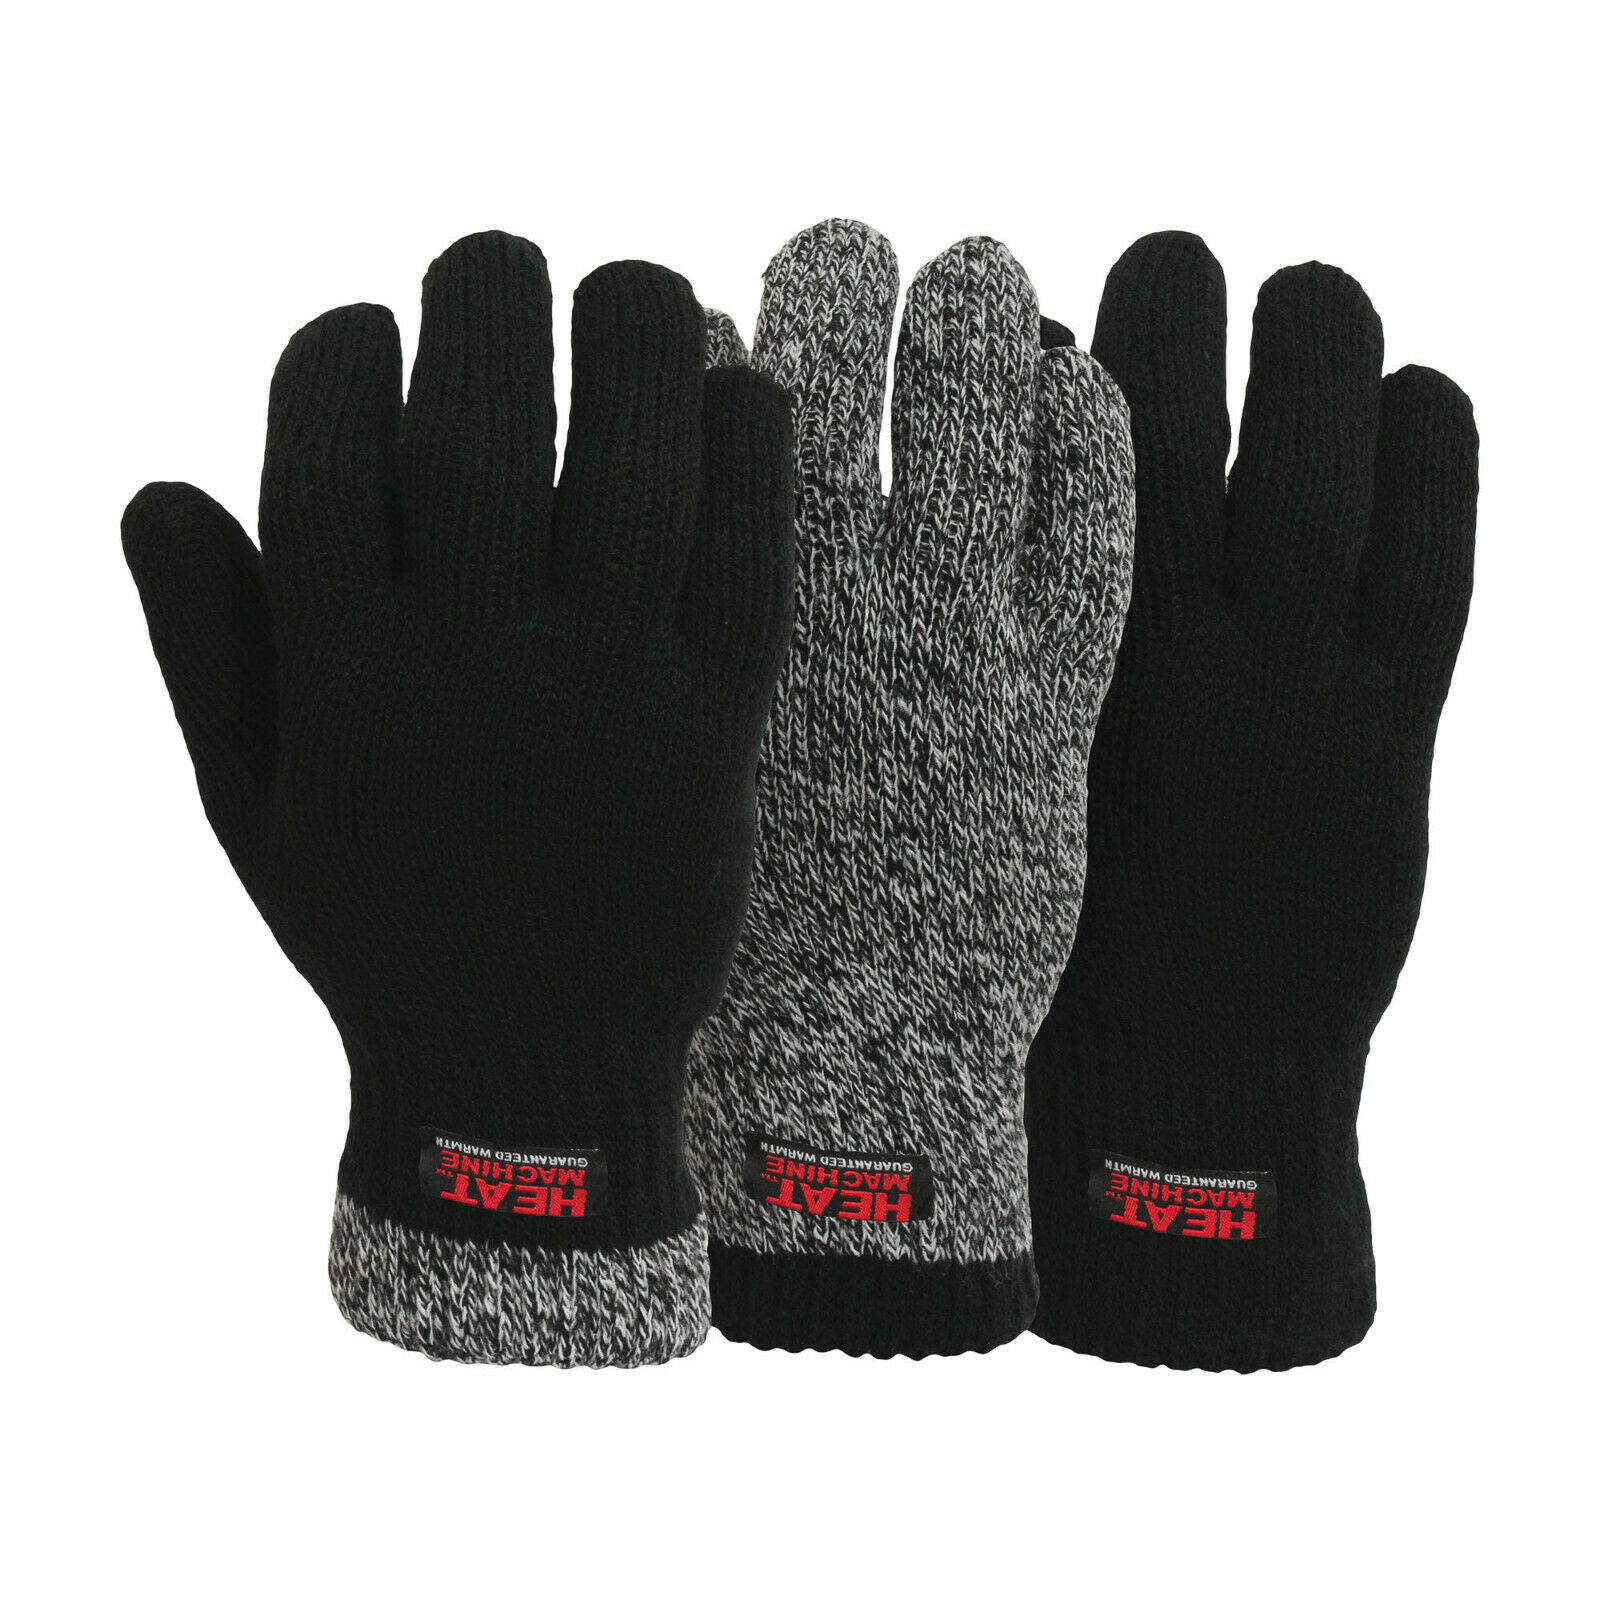 Men's Heat Machine Warm Winter 2.3 Tog Double Insulated Thermal Gloves L/XL